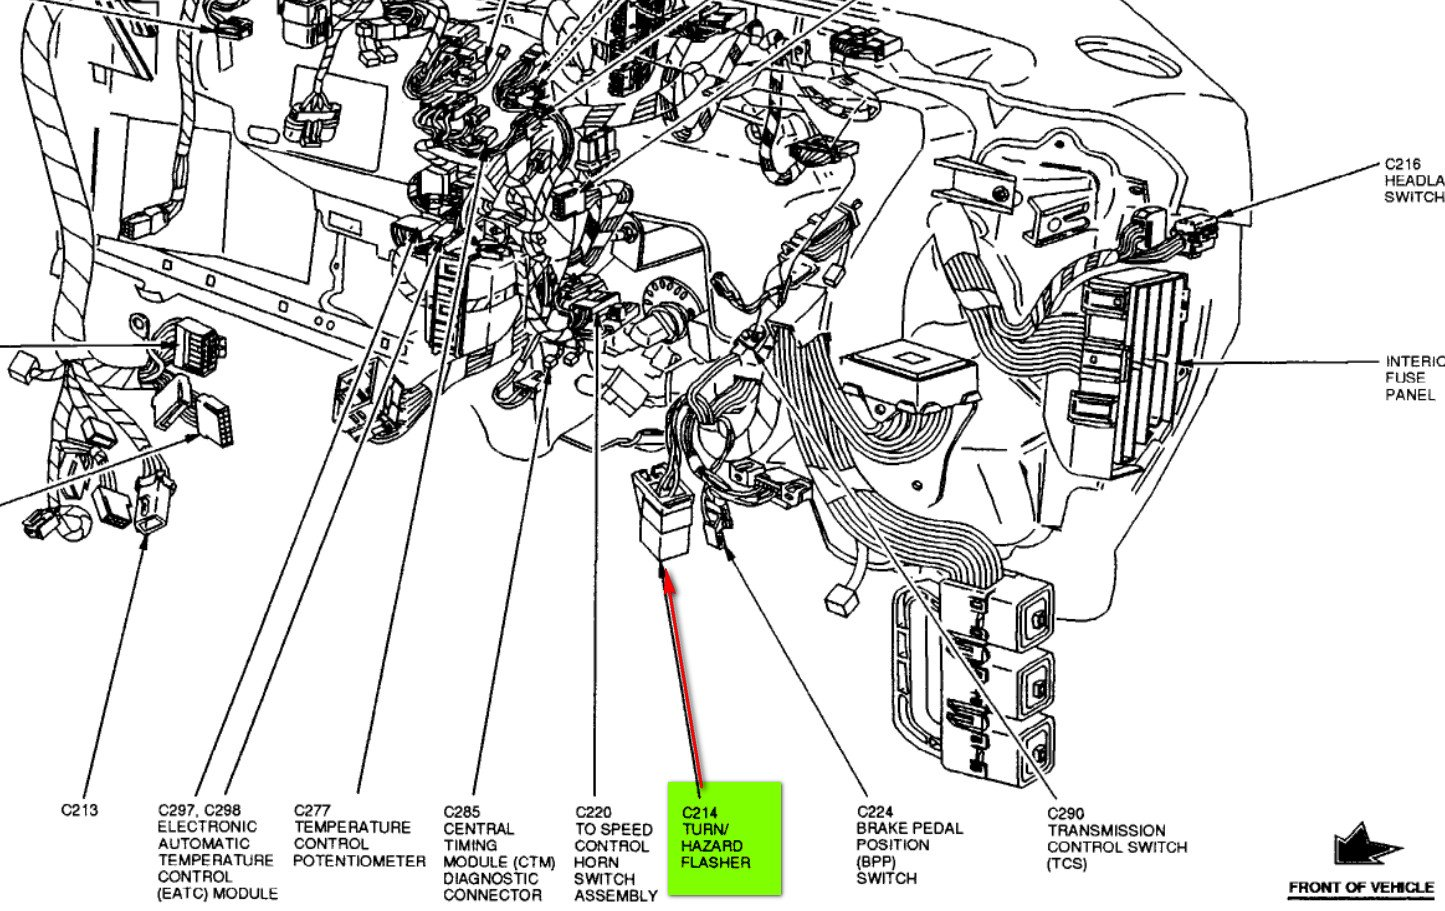 2001 Honda Accord Battery Diagram also 1kg7k Installing New Stereo 95 Nissan Pick Up None Diagrams moreover 1996 Toyota Supra Inside Fuse Box Diagram likewise Intake Manifold Egr Valve Location besides 2003 Honda Element Foglight Circuit Diagram And Wiring Color Code. on wiring diagram for 2002 mitsubishi galant